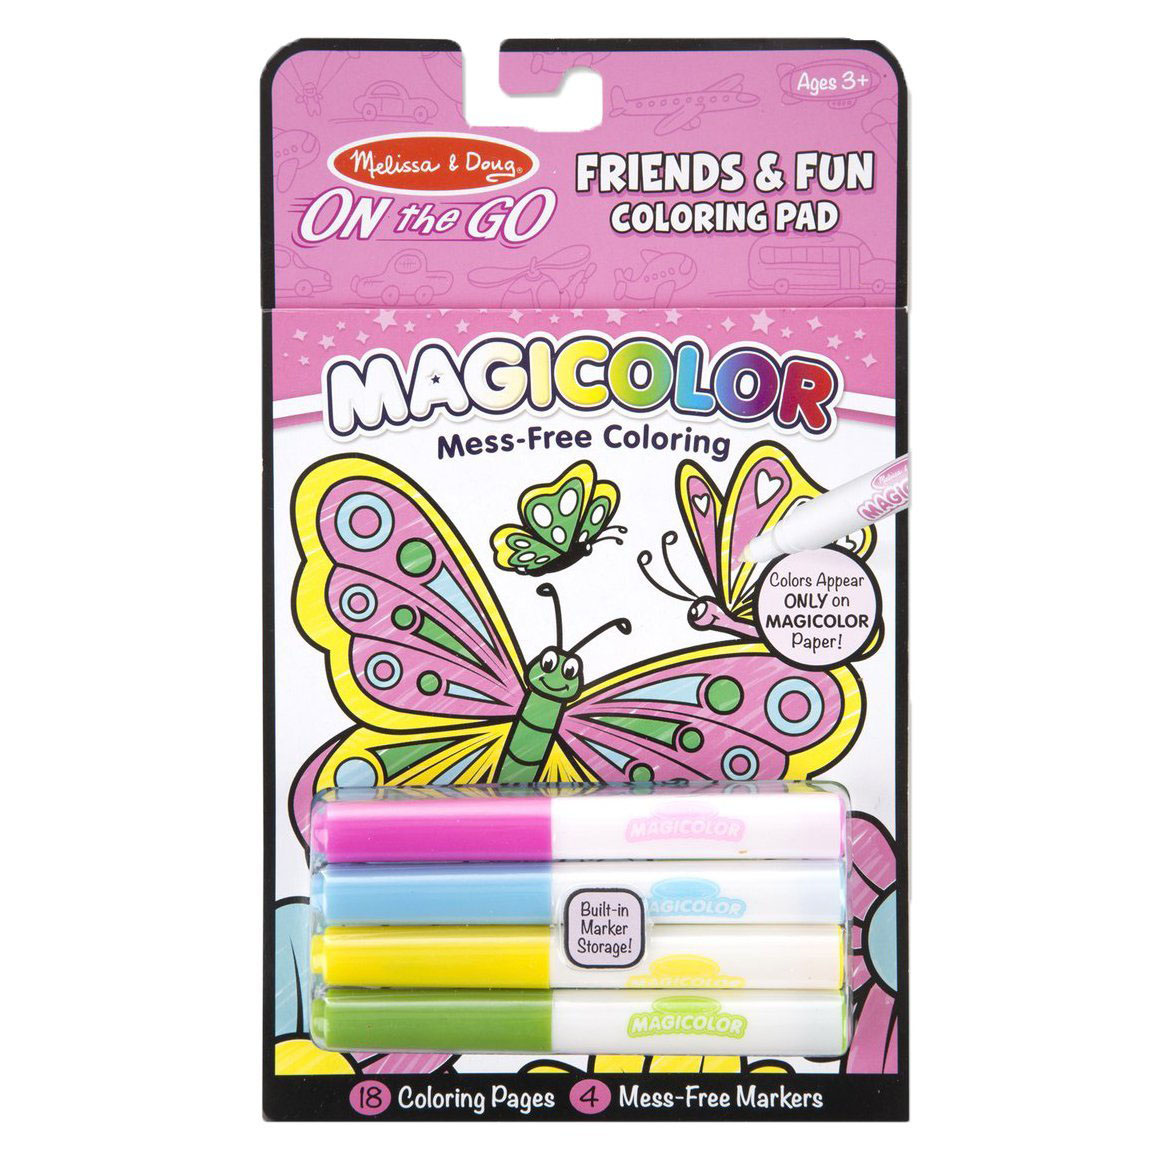 ชุดระบายสีแบบพกพา Melissa & Doug On the Go Magicolor Coloring Pad - Friends and Fun